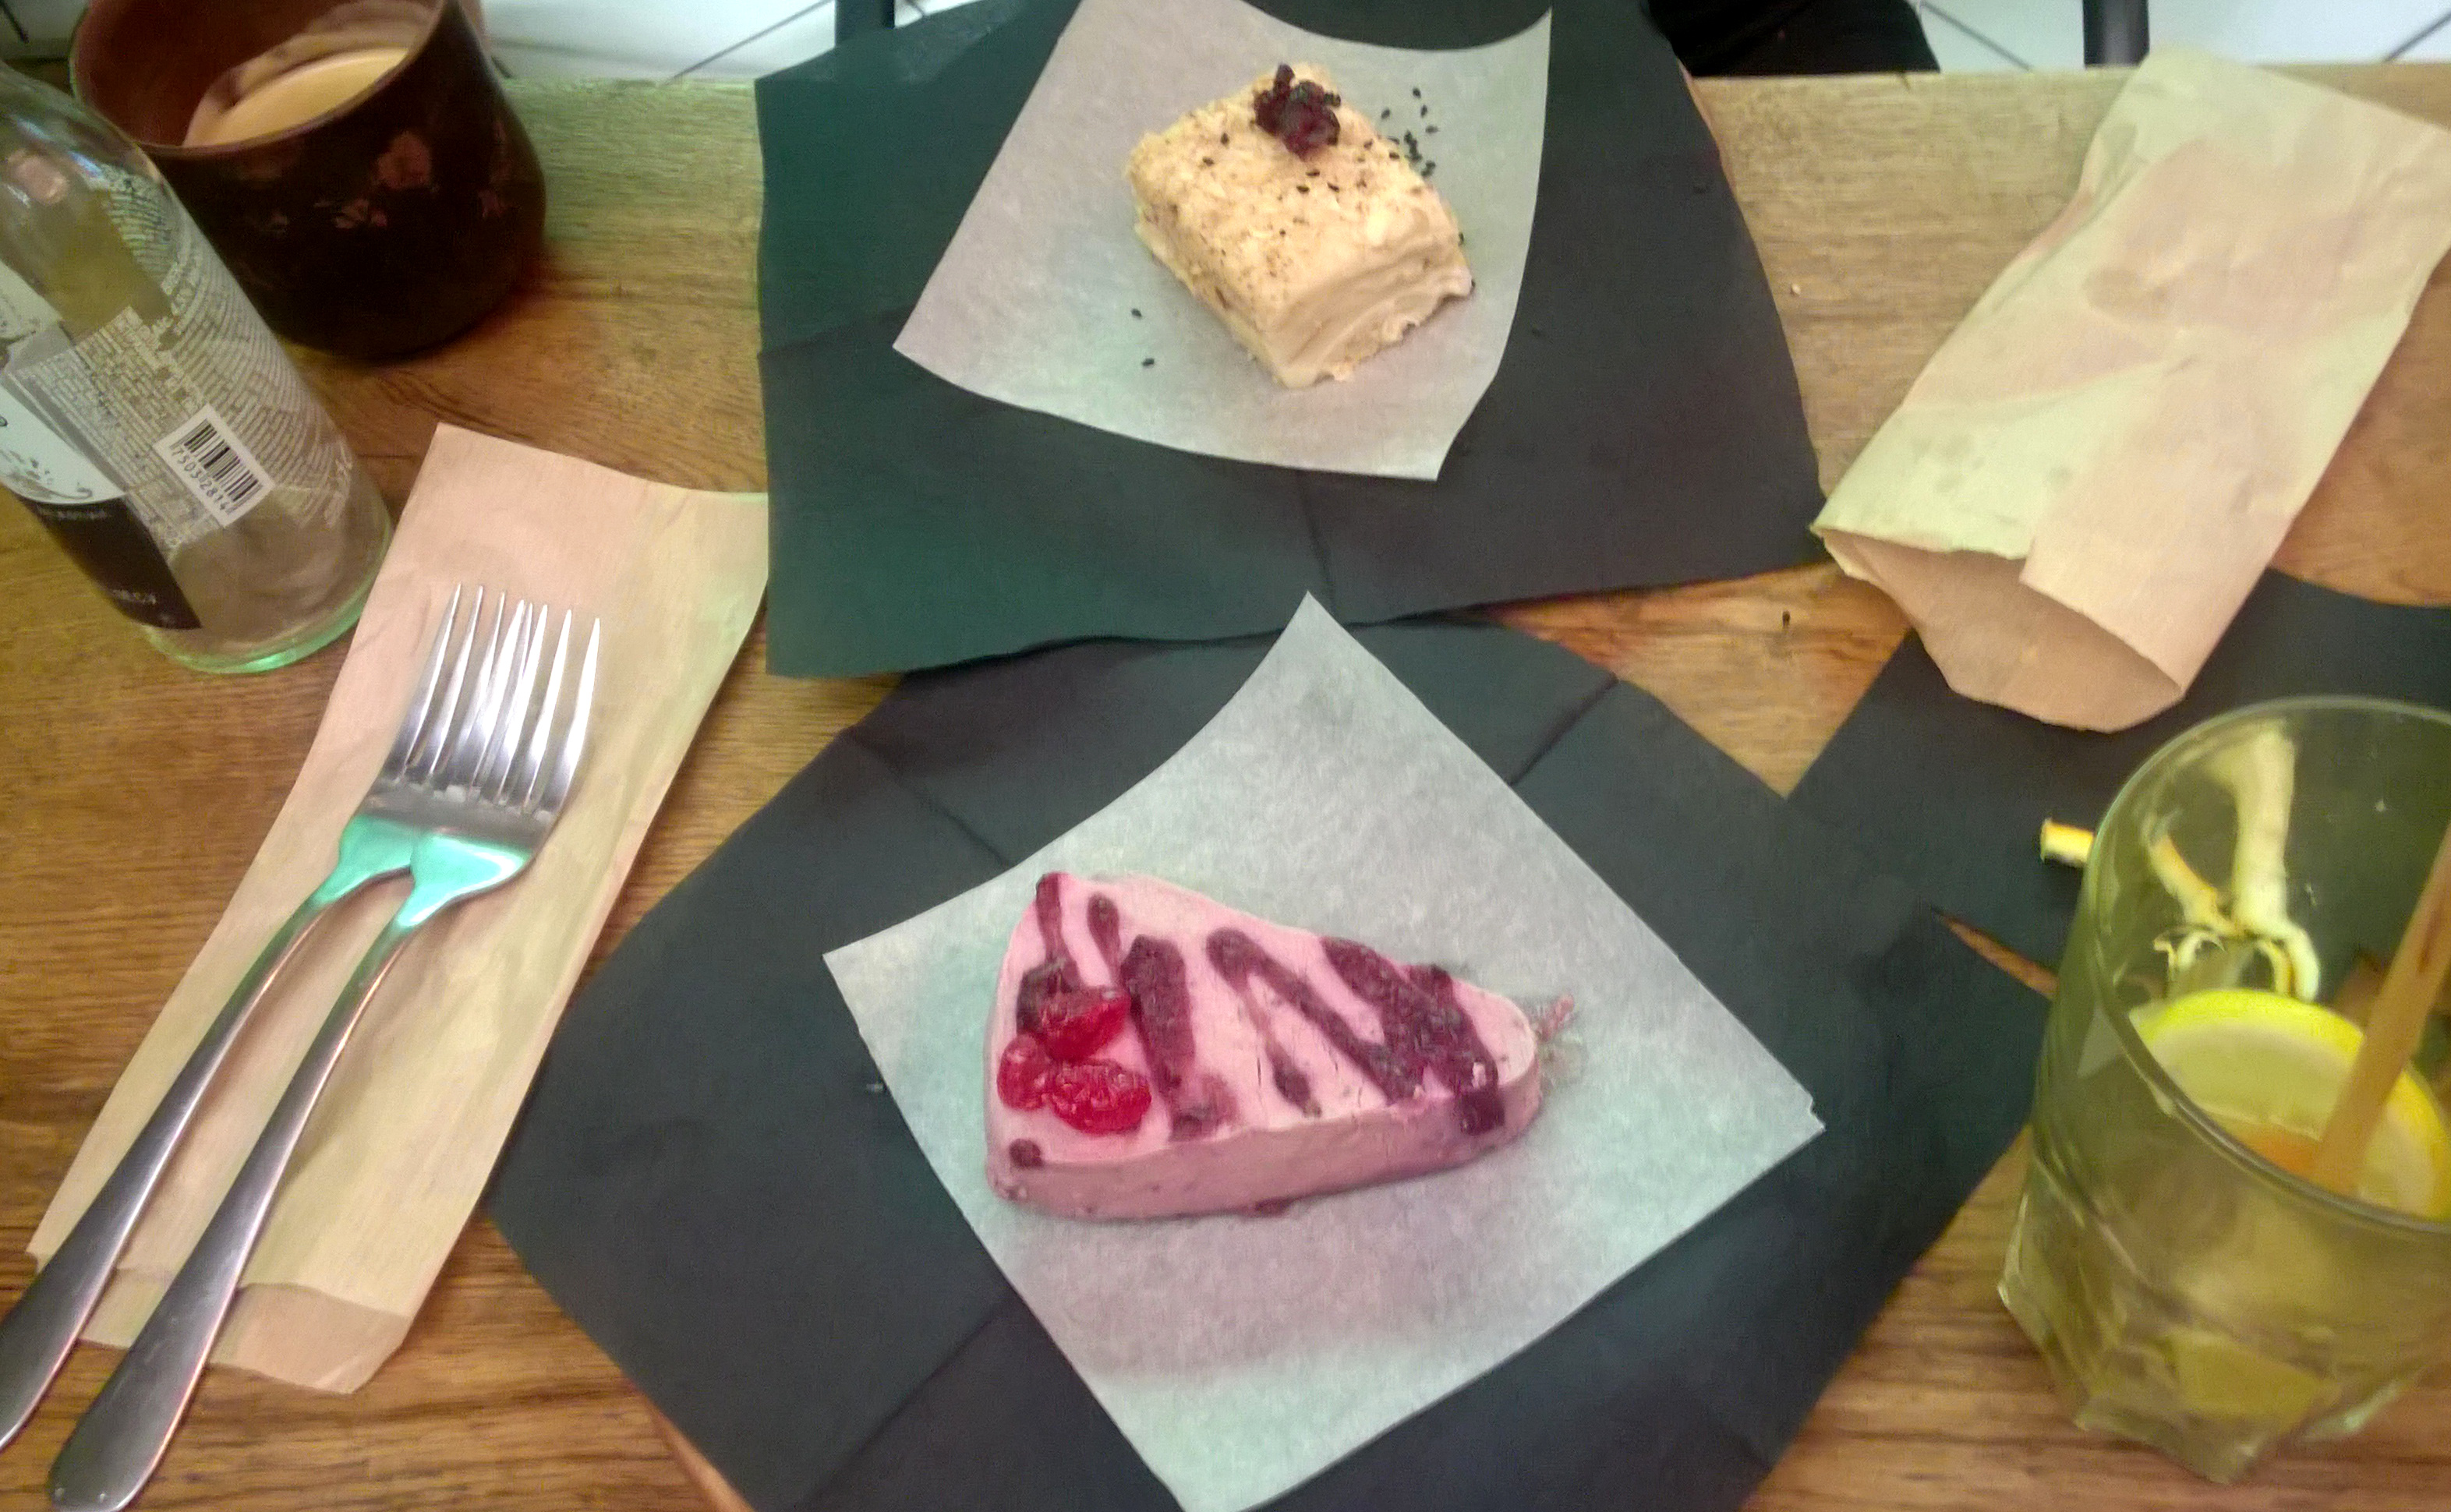 Desserts at One Planet